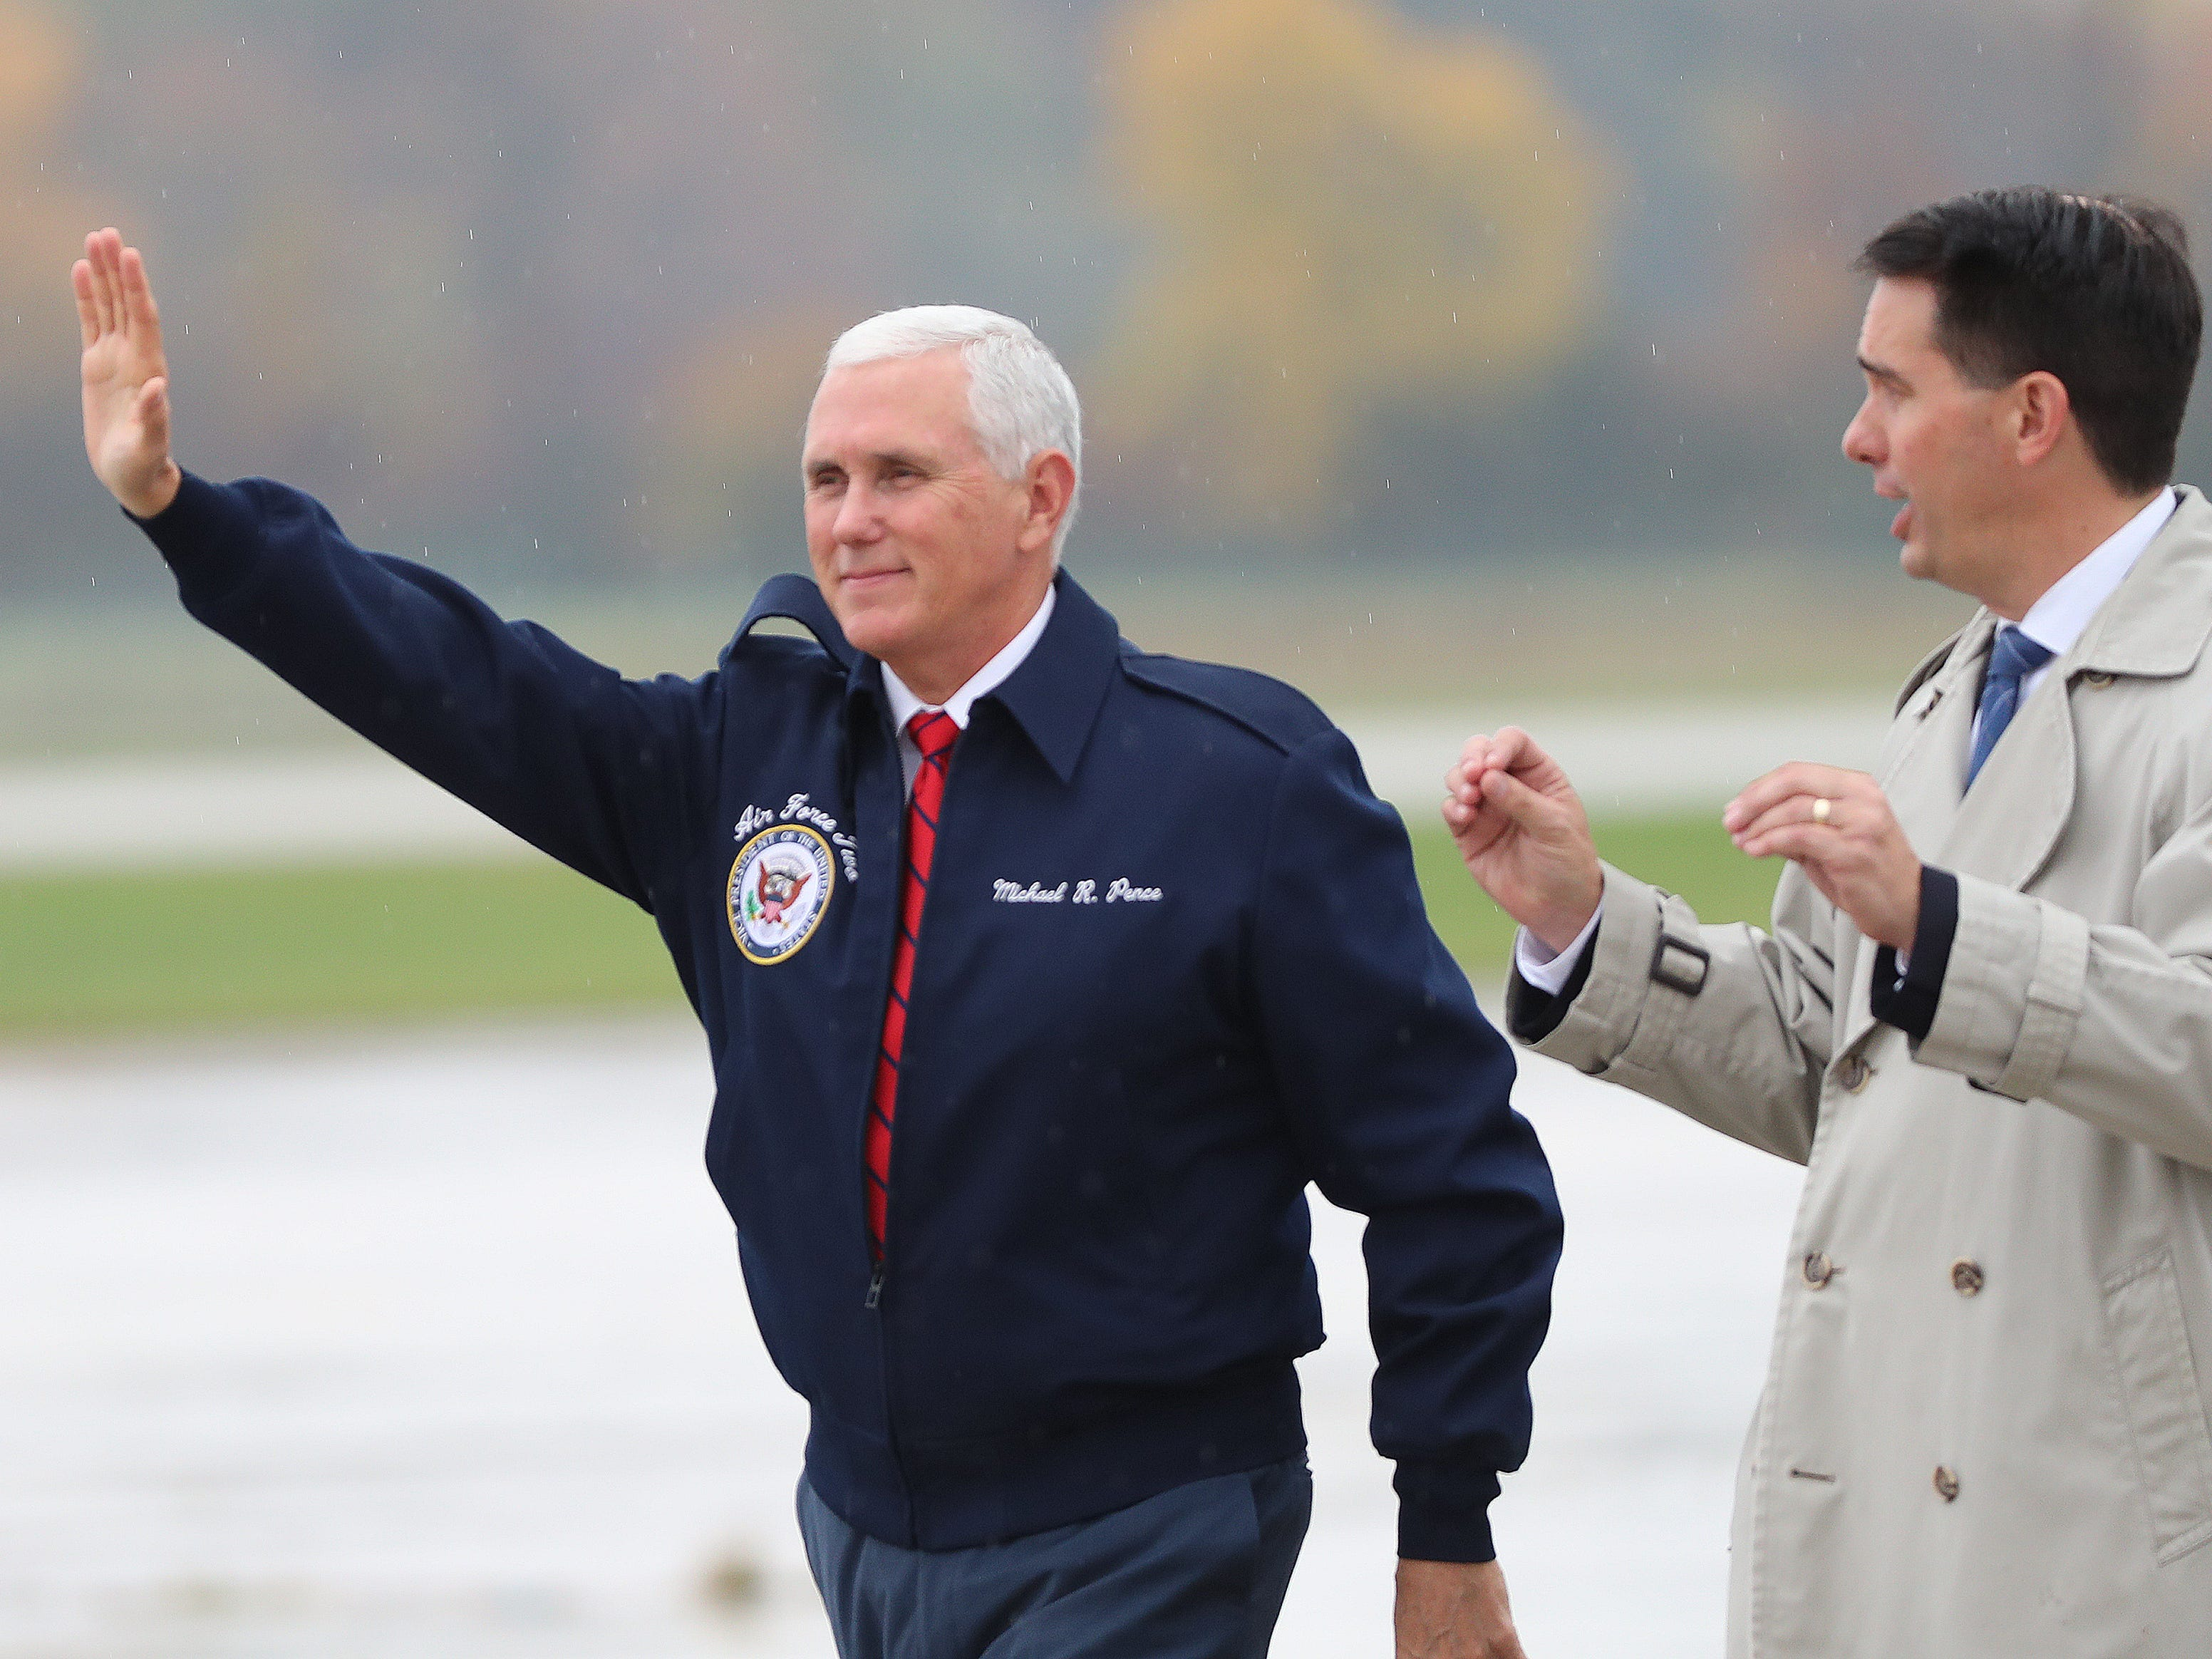 Vice President Mike Pence waves after arriving in Green Bay Wednesday, Oct. 10, 2018, in Ashwaubenon. Gov. Scott Walker is at right.